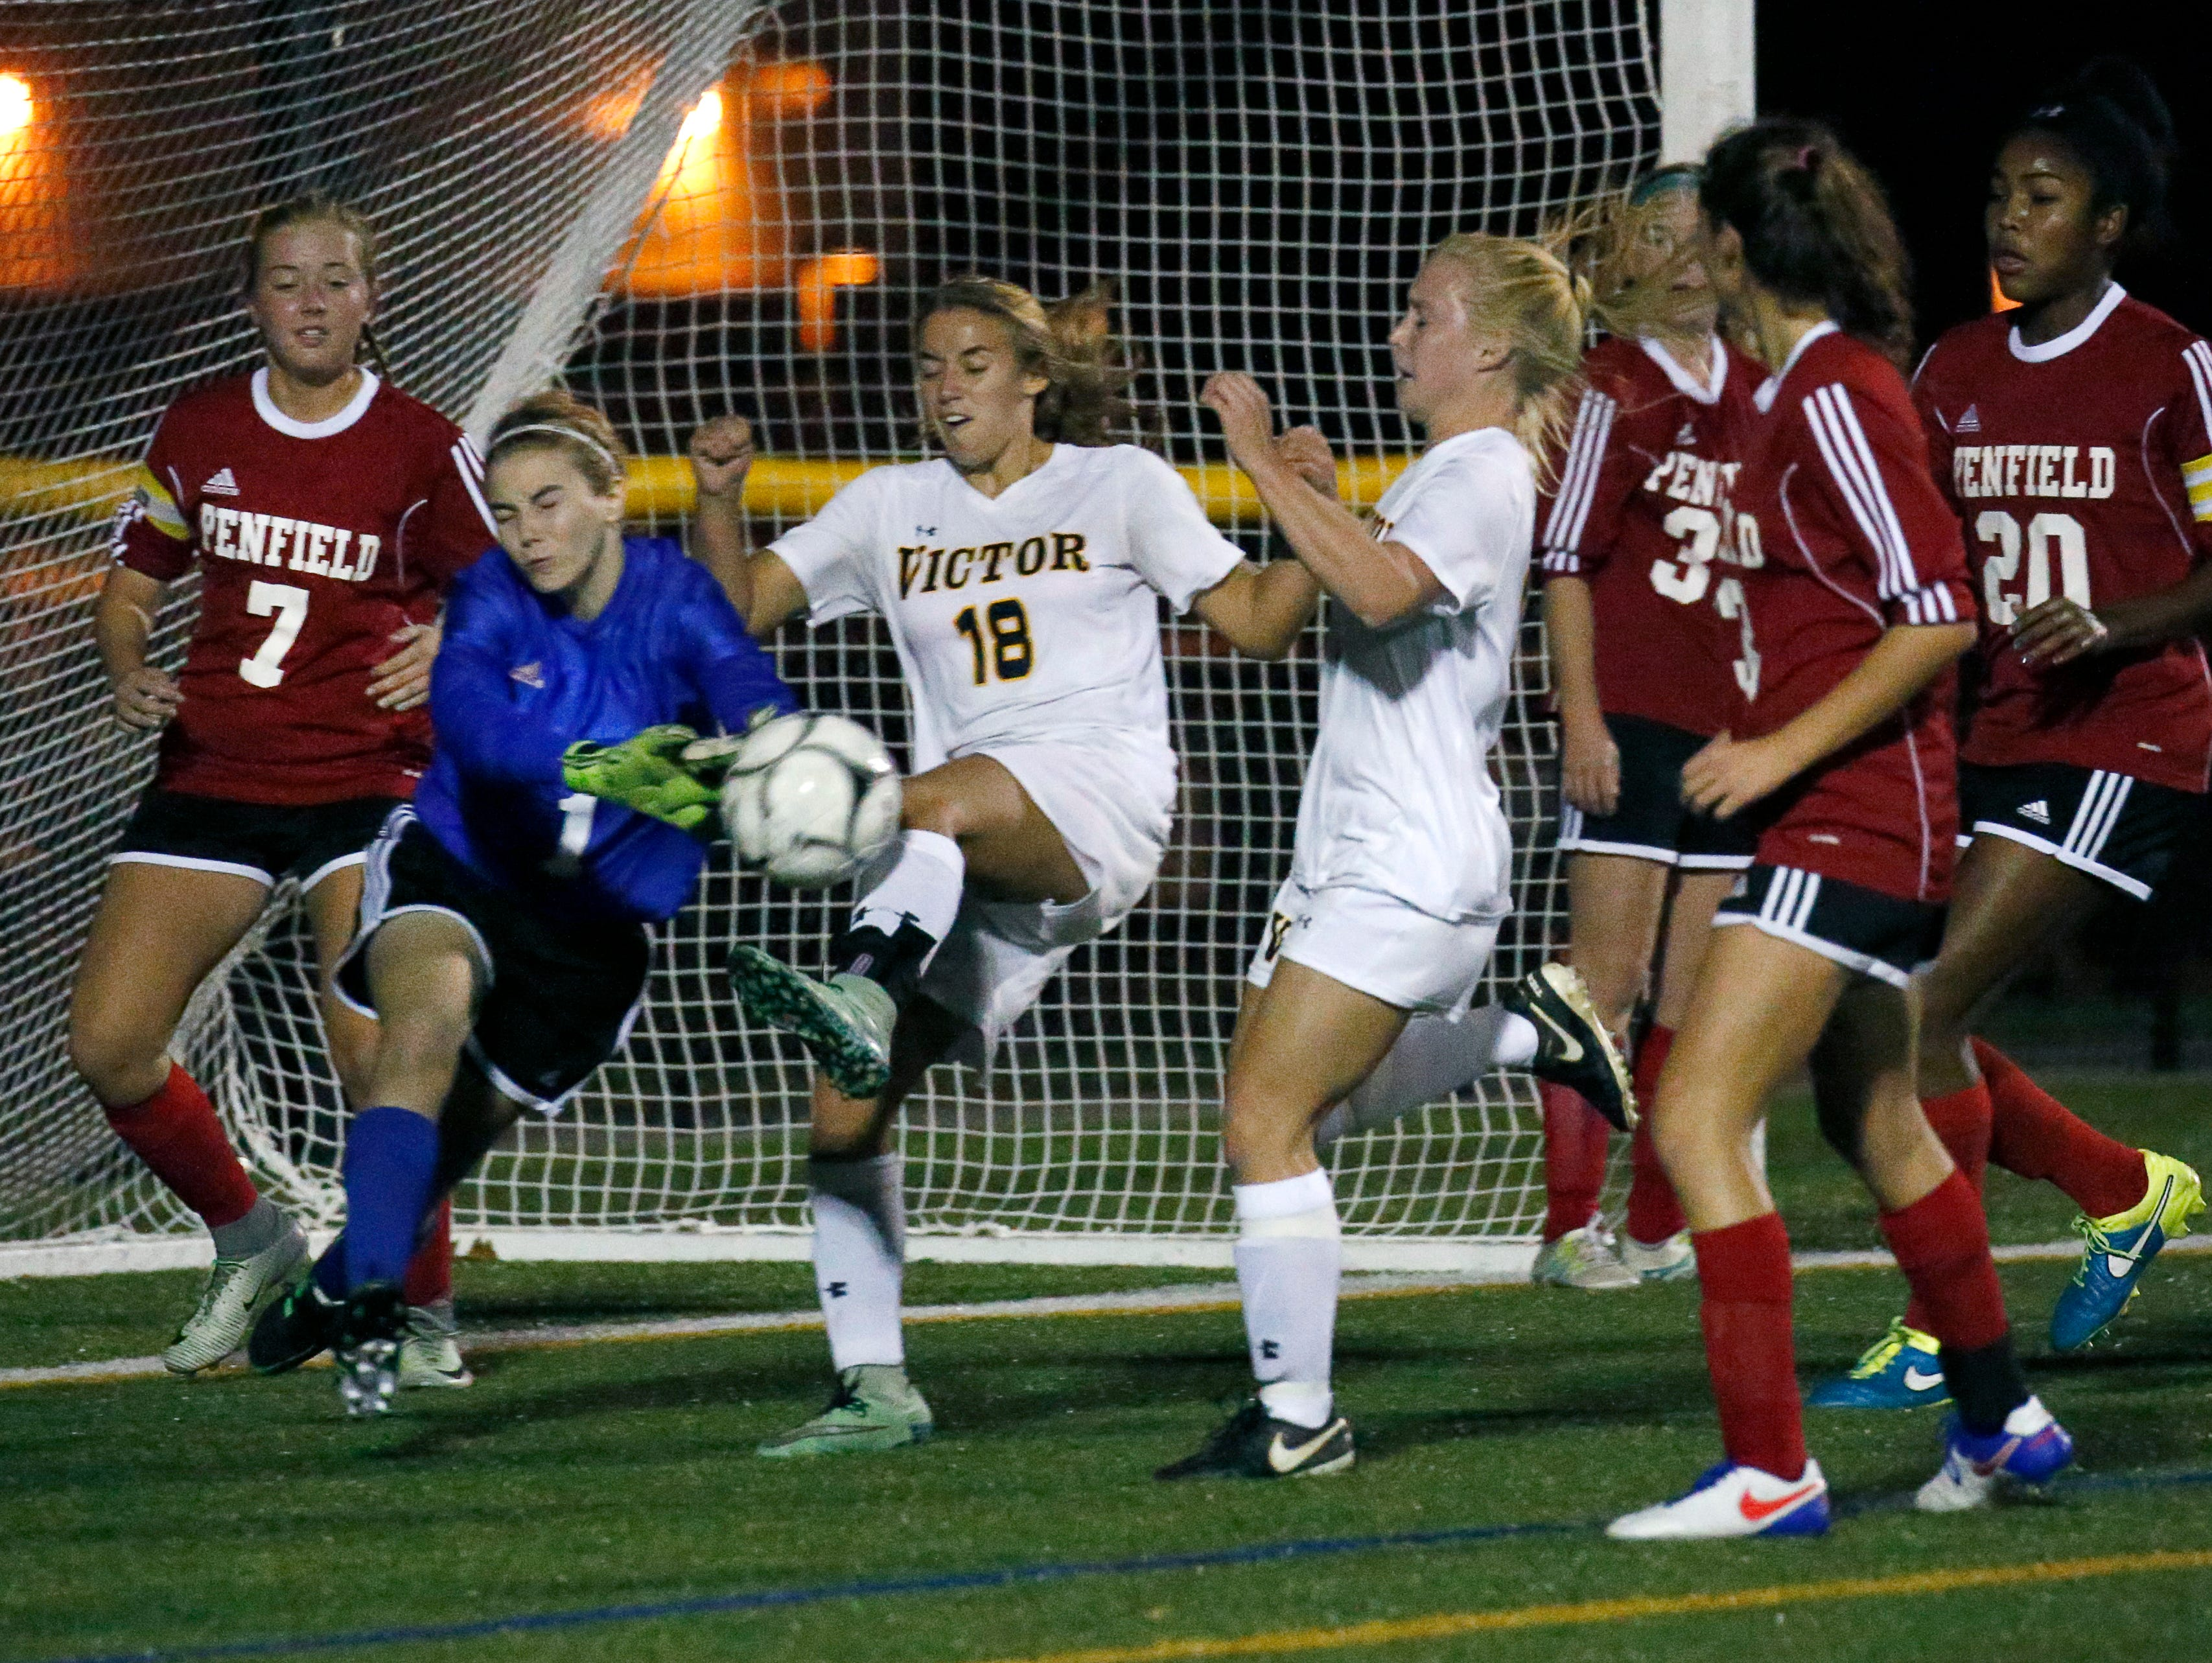 A tense moment as Penfield goalie Jessica Pegg defends from Victor's Samantha White in the first half at Webster Schroeder High School.